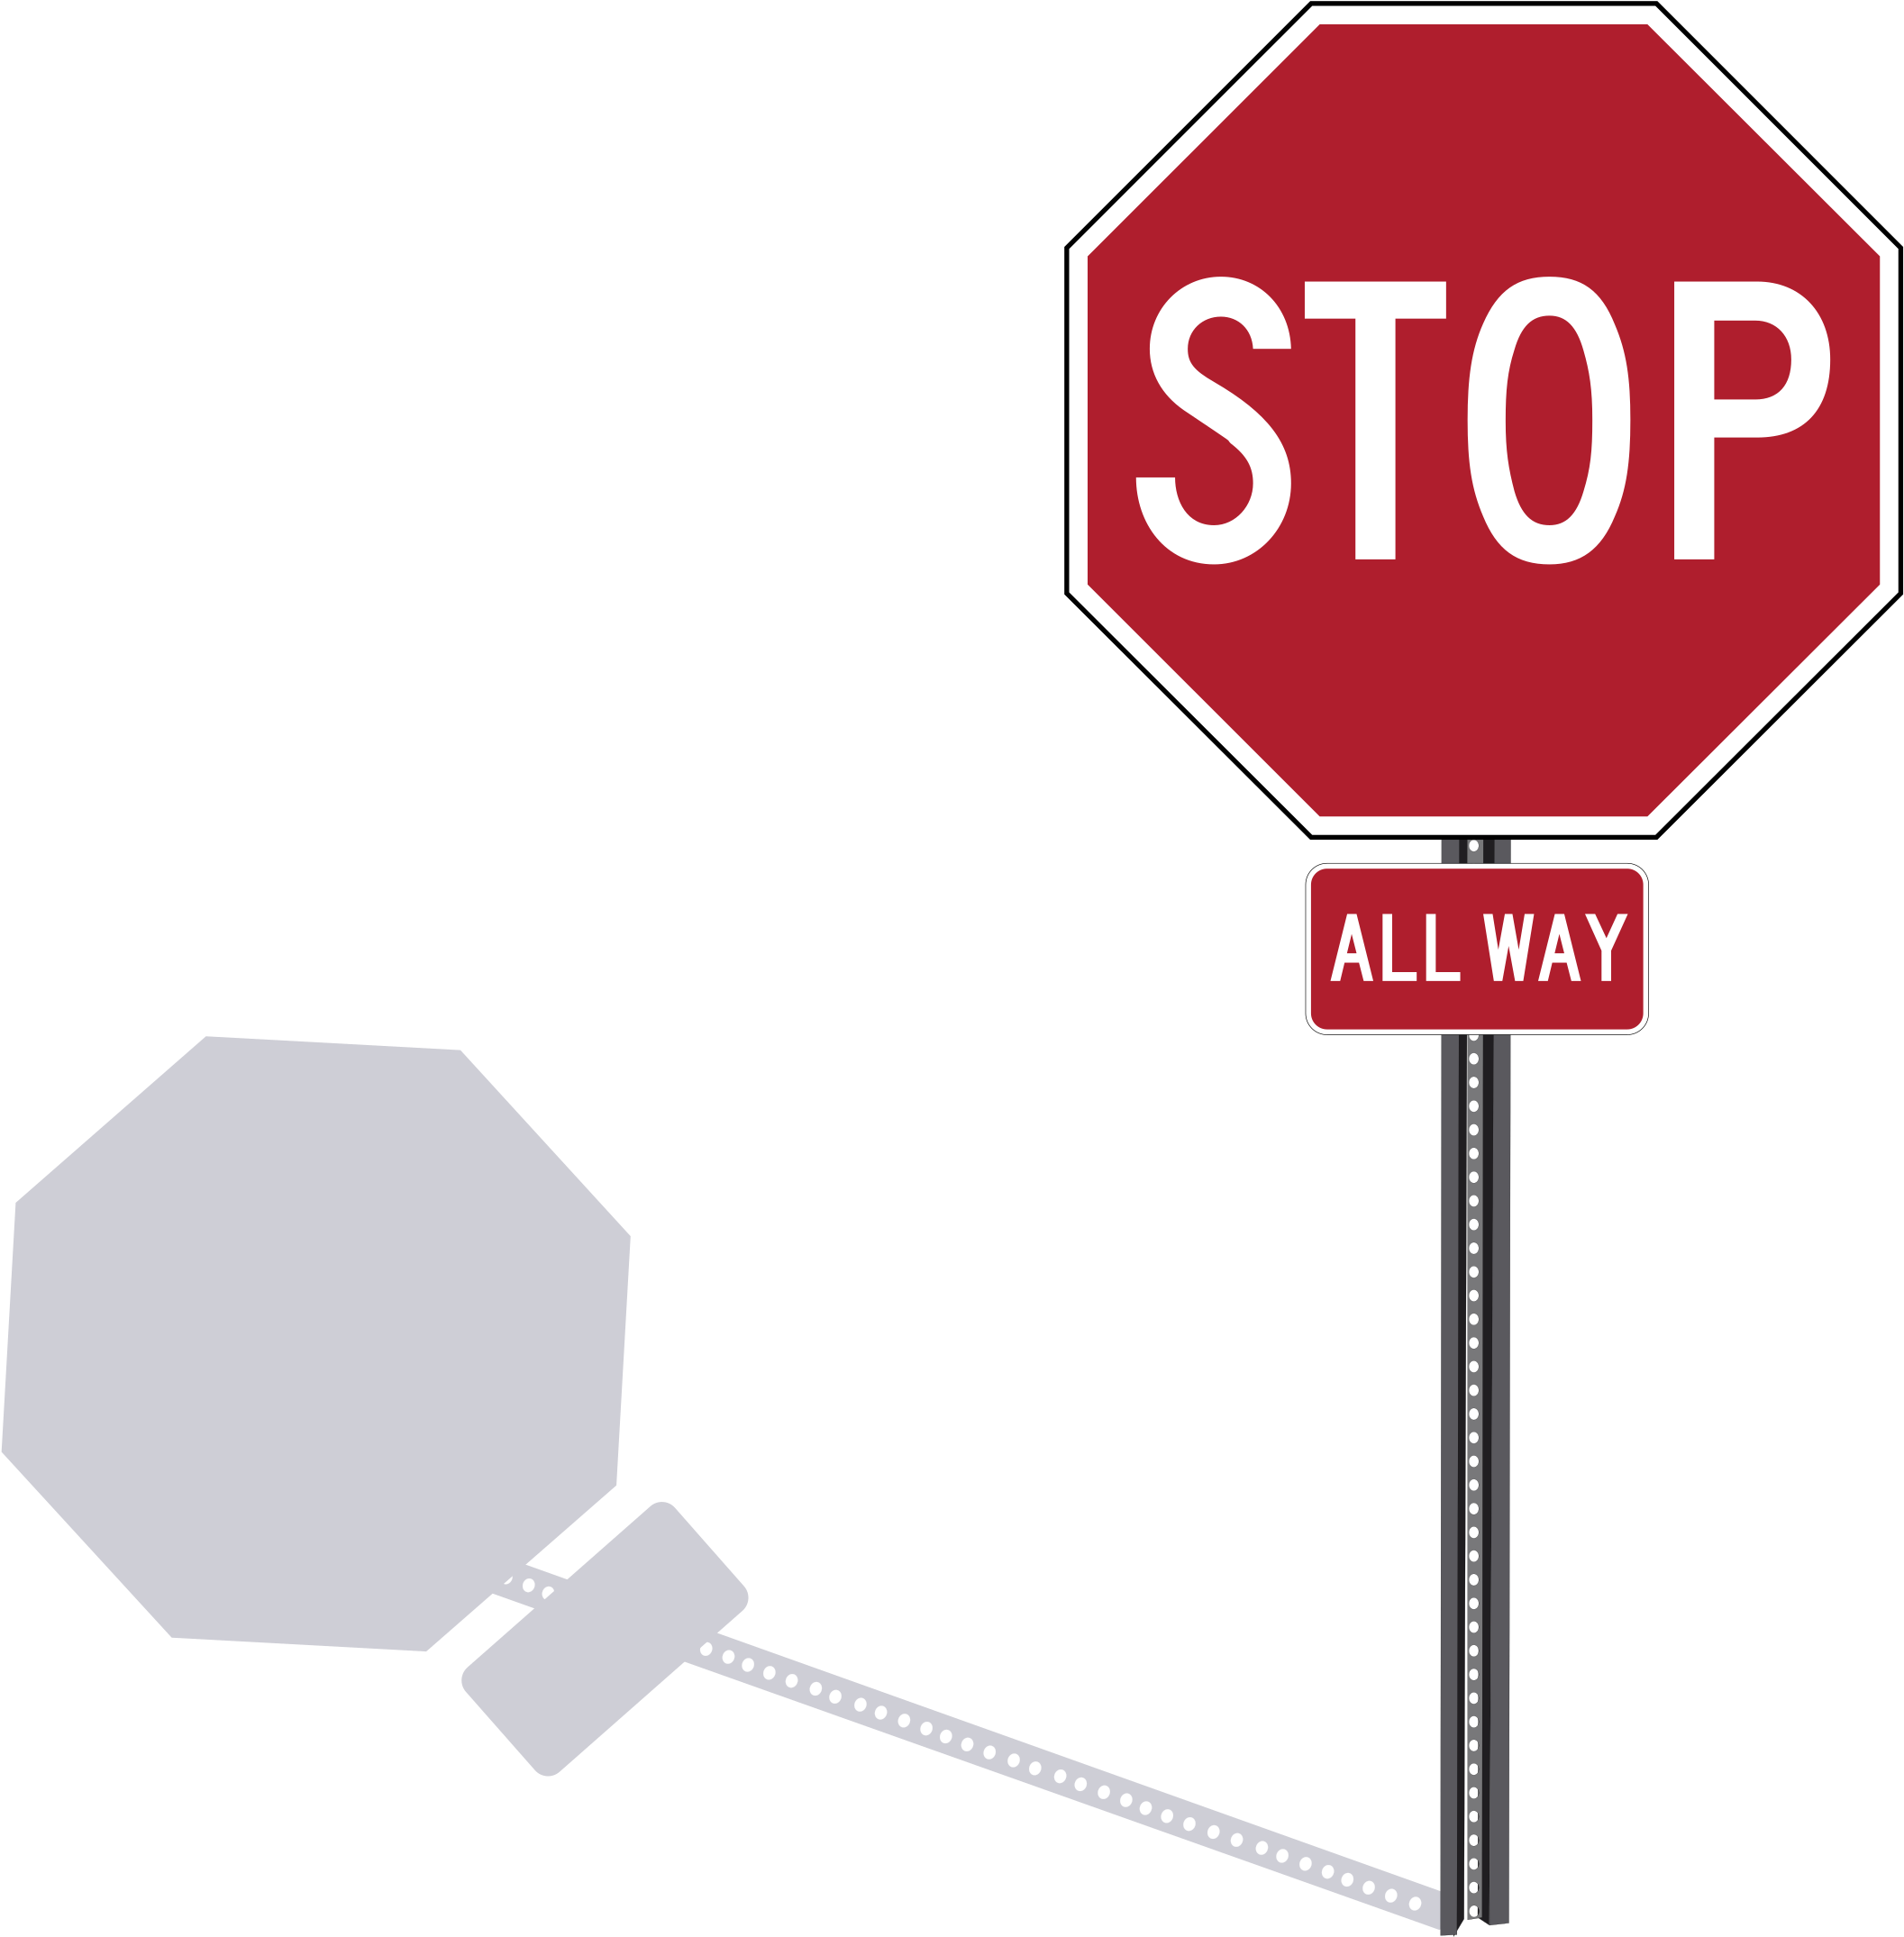 This Free Icons Png Design Of Stop Sign On Post Clipart (2400x2192), Png Download